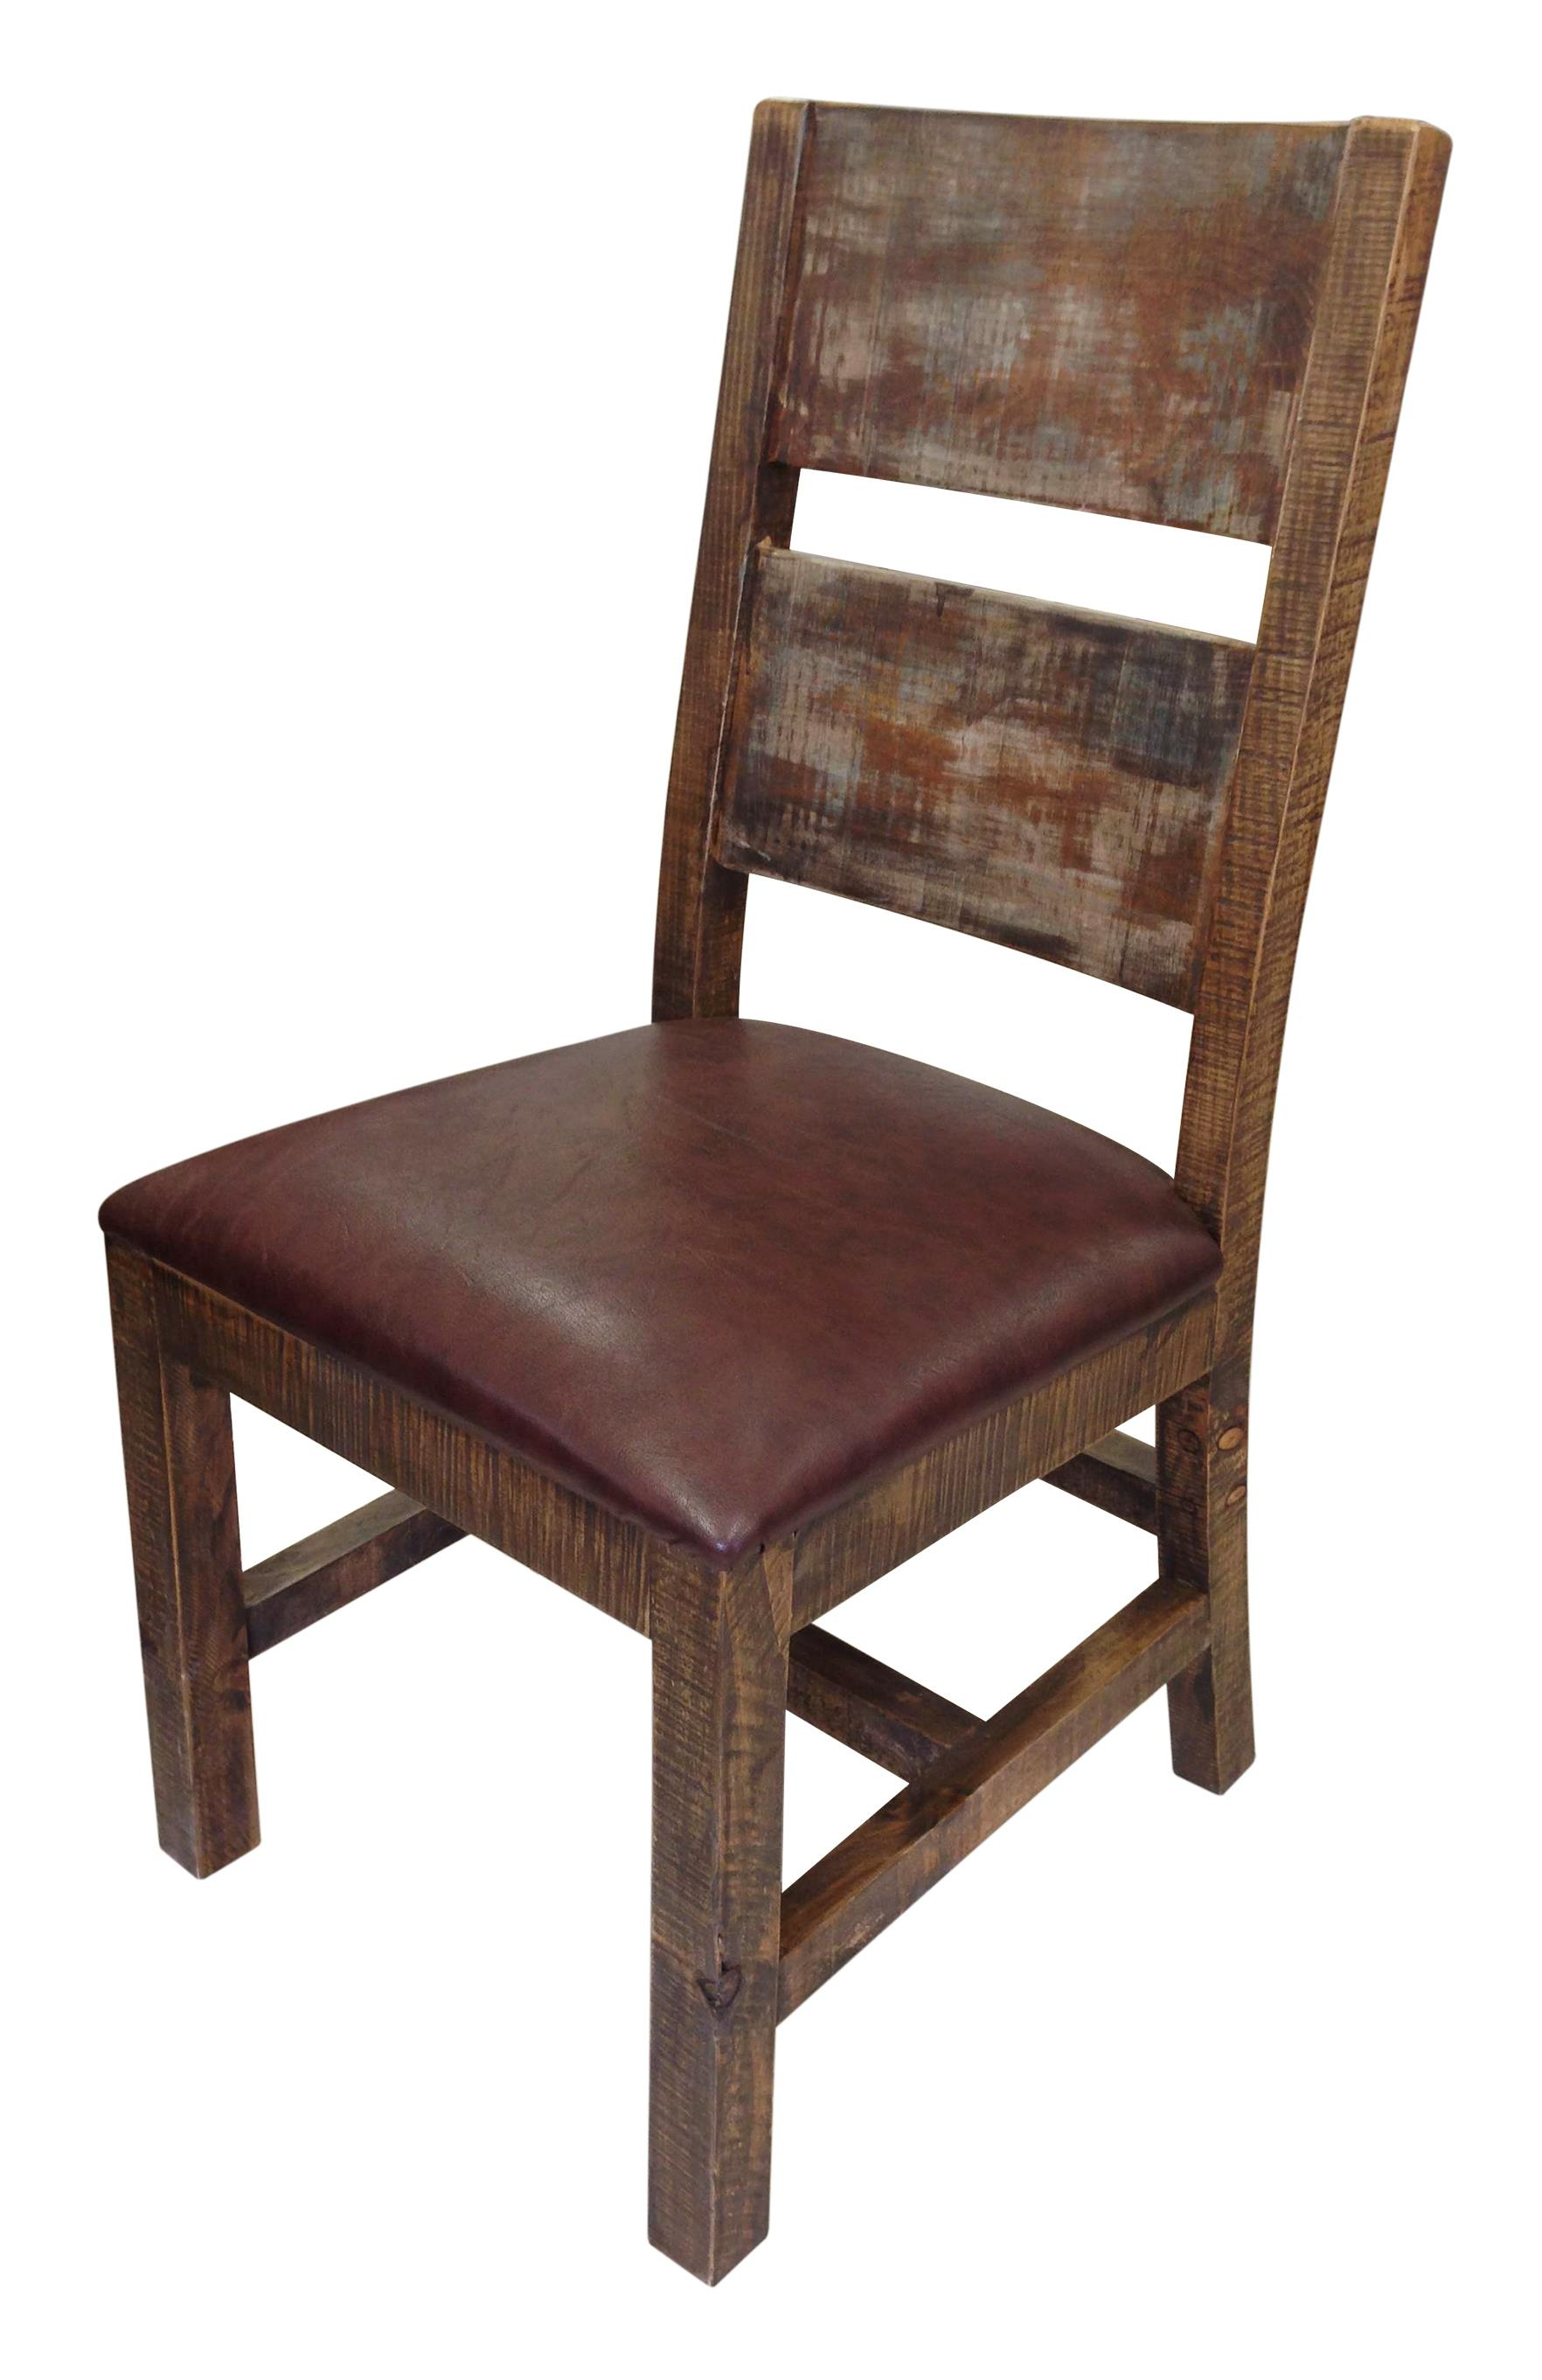 Antique Wooden Chair International Furniture Direct 900 Antique Solid Wood